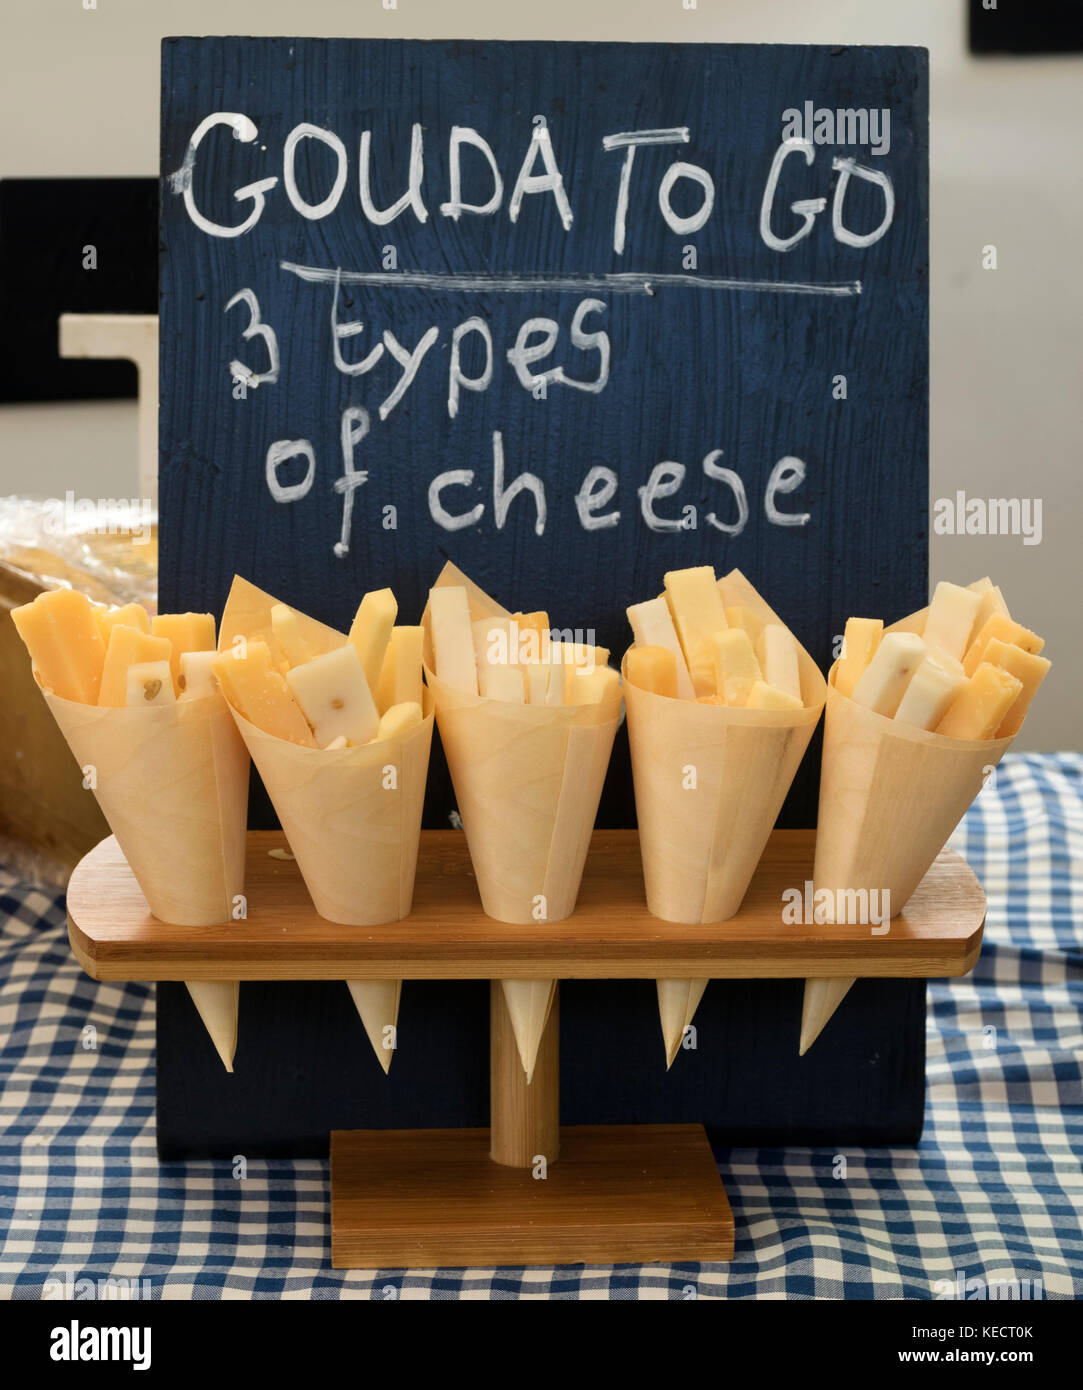 Amsterdam, Netherlands - September 23, 2017: Bags with three different types of Dutch cheese to taste - Stock Image